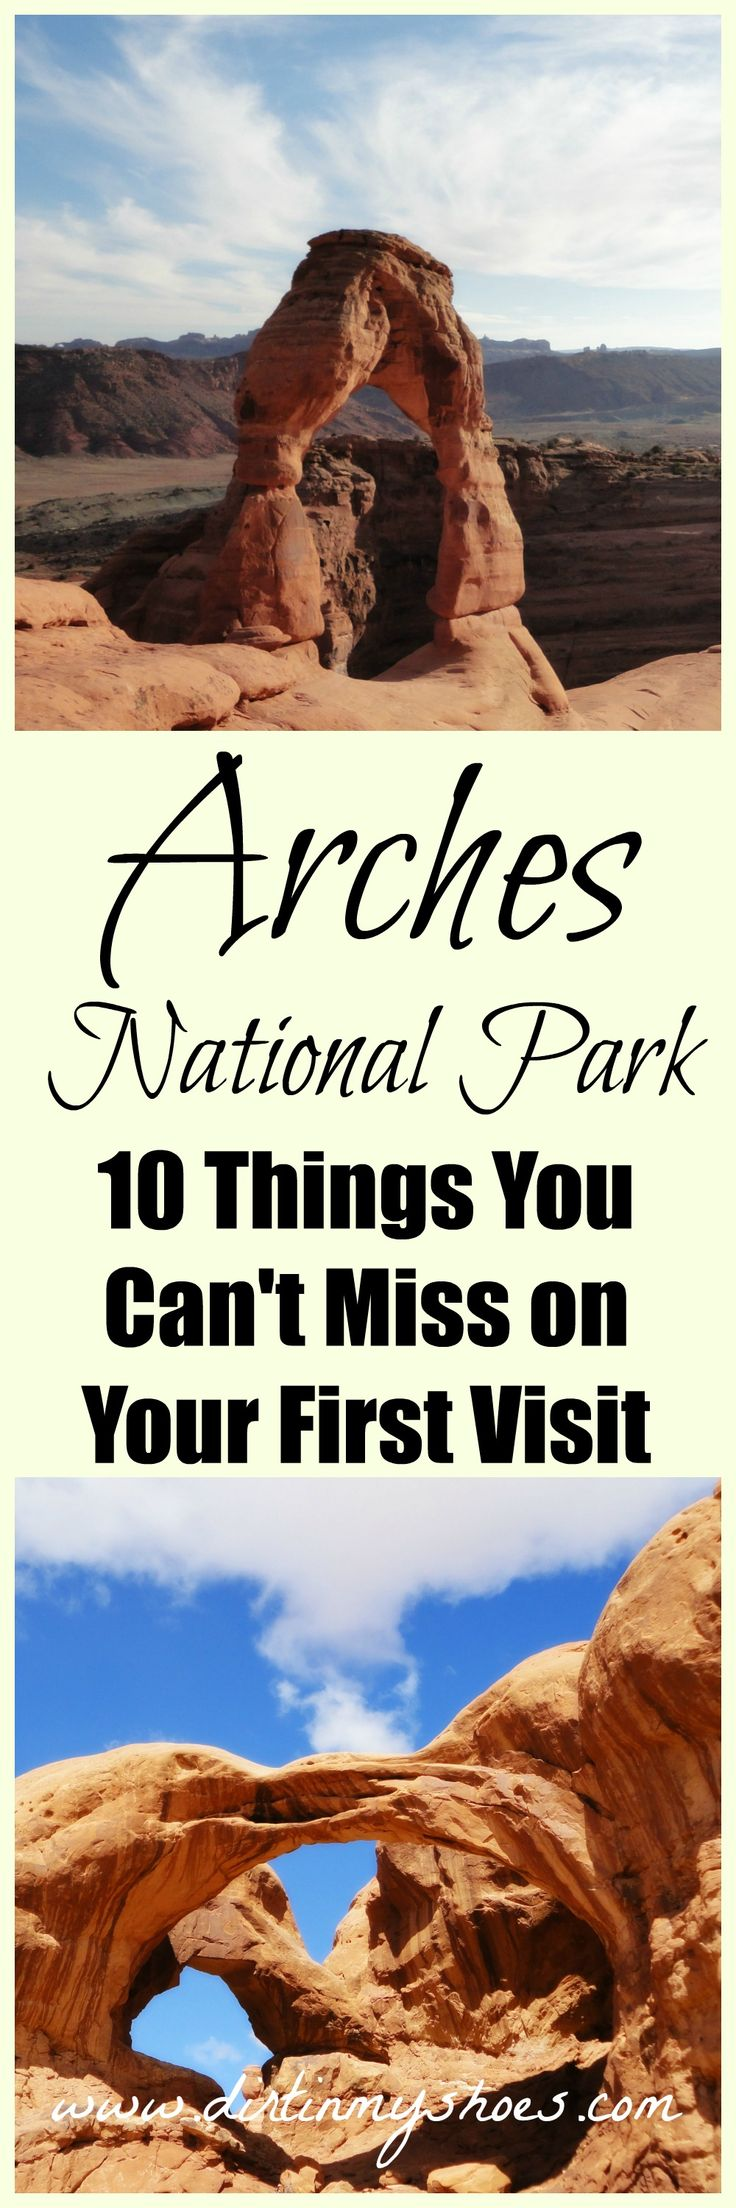 Arches National Park || Explore the land of natural arches and unique rock formations with this list of 10 things you can't miss! || Dirt In My Shoes